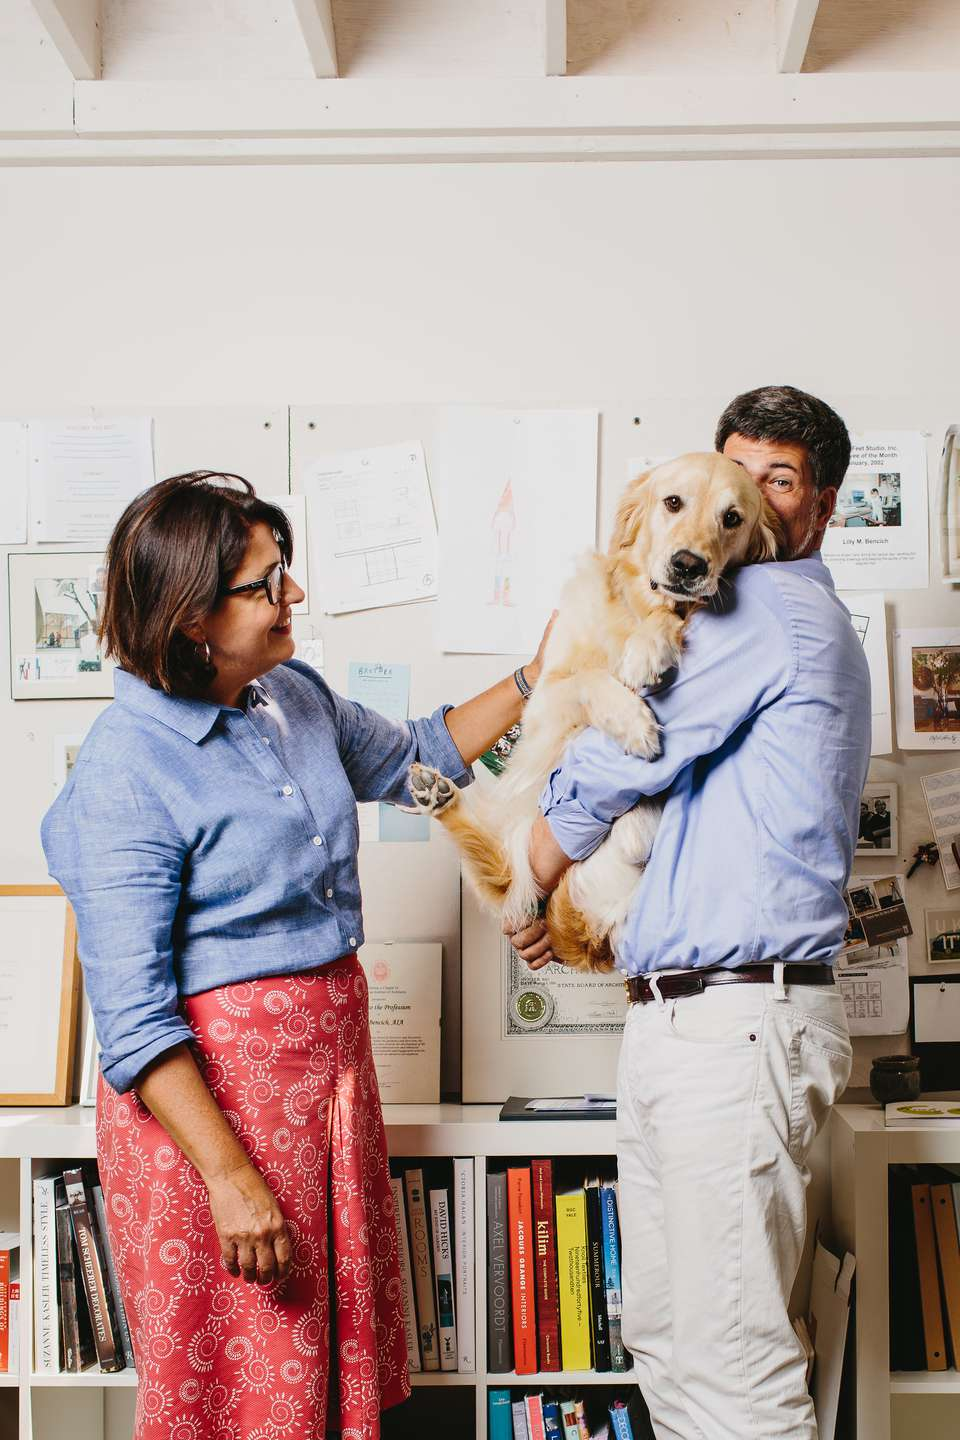 Inside Atlanta: John and Vivian Bencich of Square Feet Studio